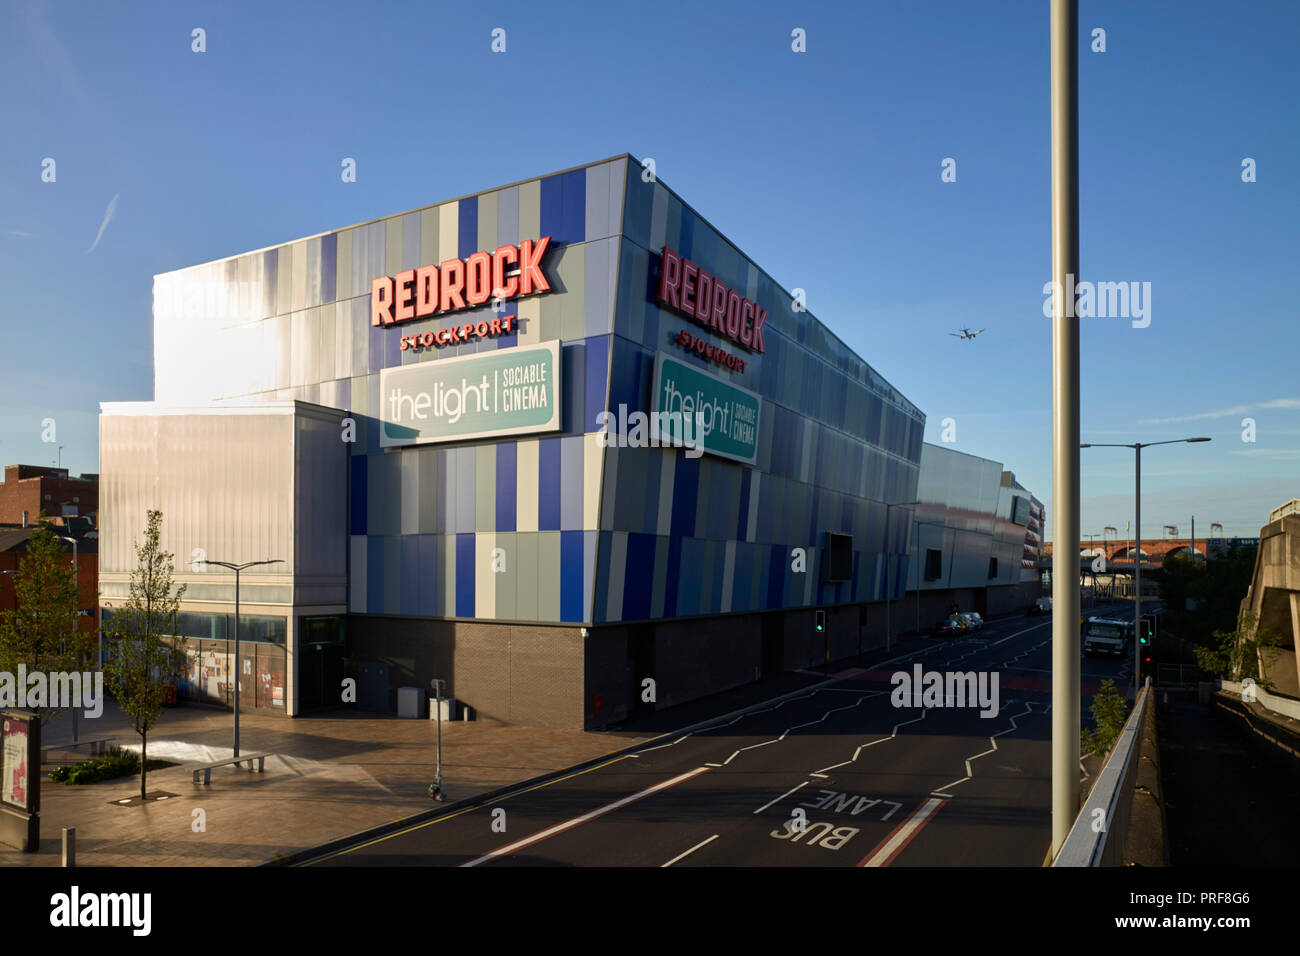 Redrock exterior at Stockport in the early morning - Stock Image